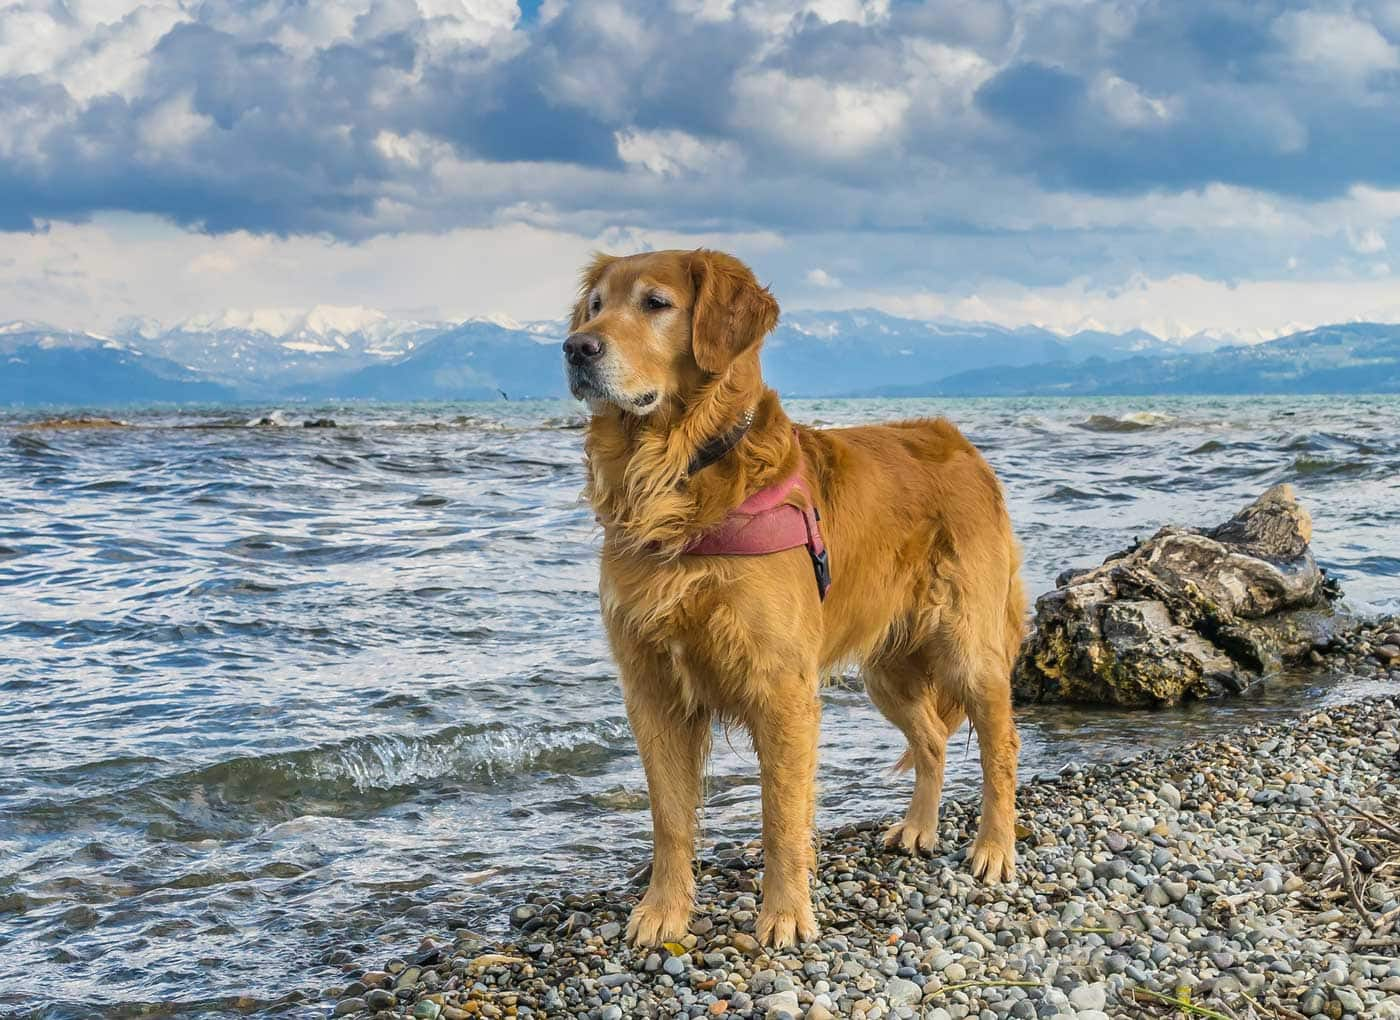 Losing a canine adventure partner - Stoic dog on shoreline